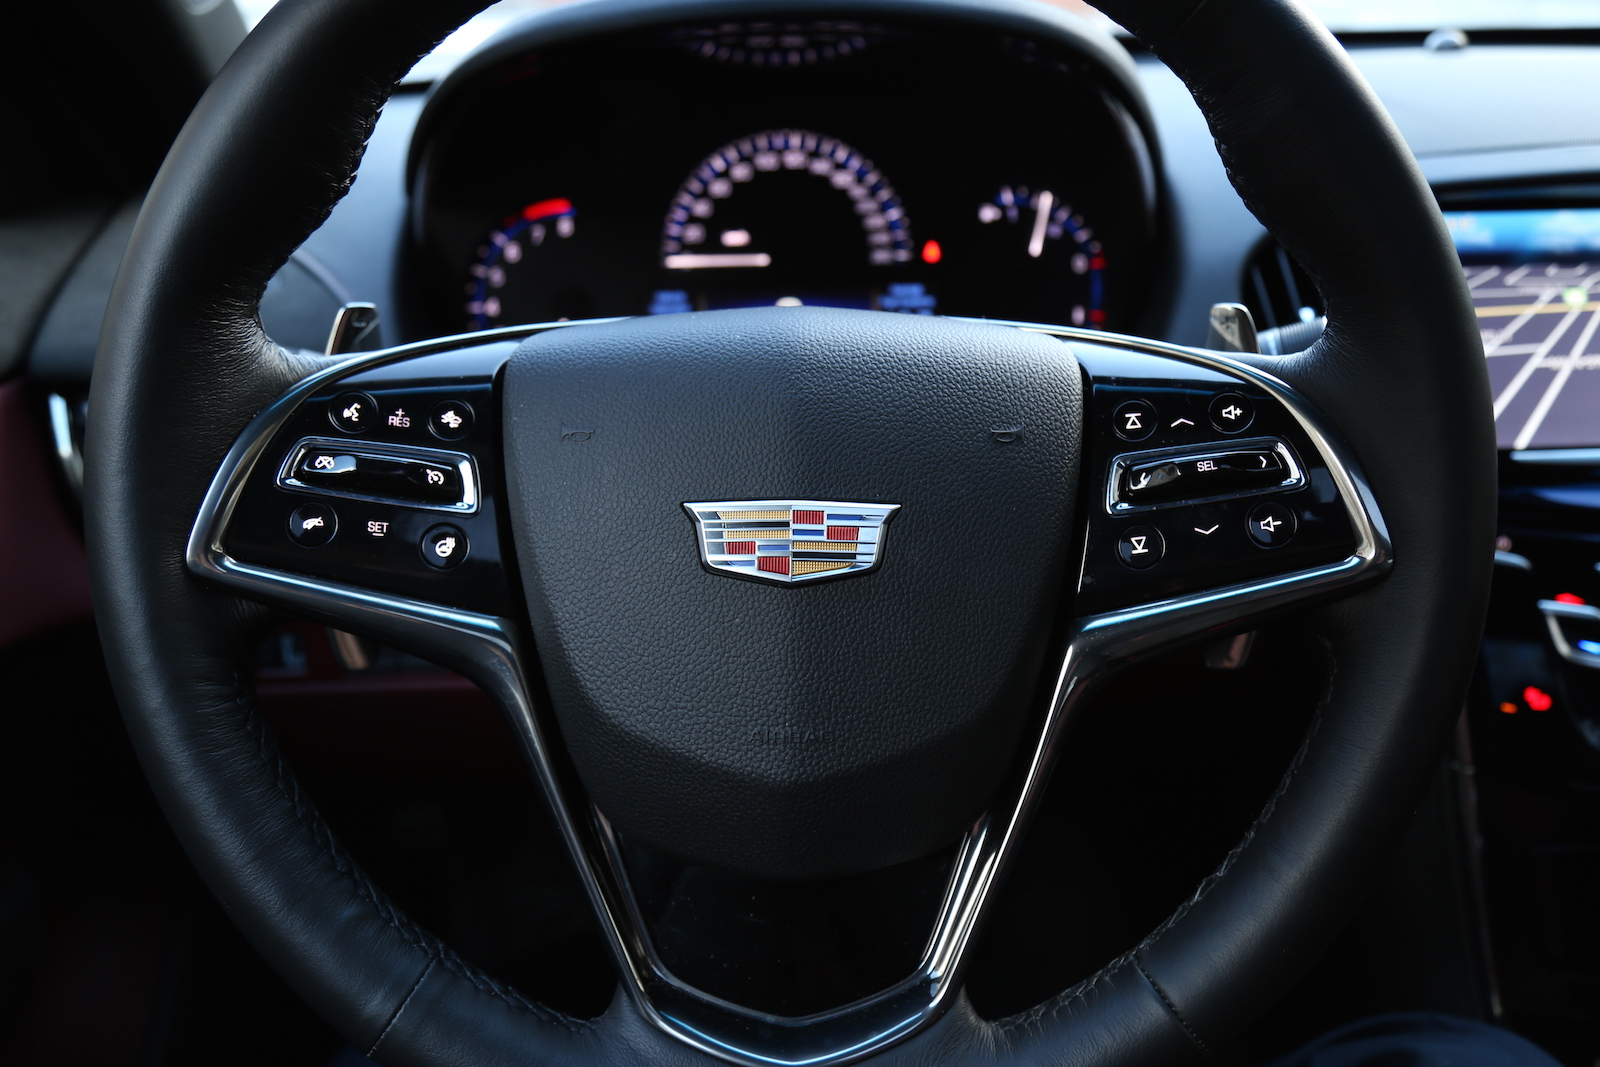 Cadillac Ats V Coupe >> Review: 2015 Cadillac ATS Coupe 3.6L | Canadian Auto Review